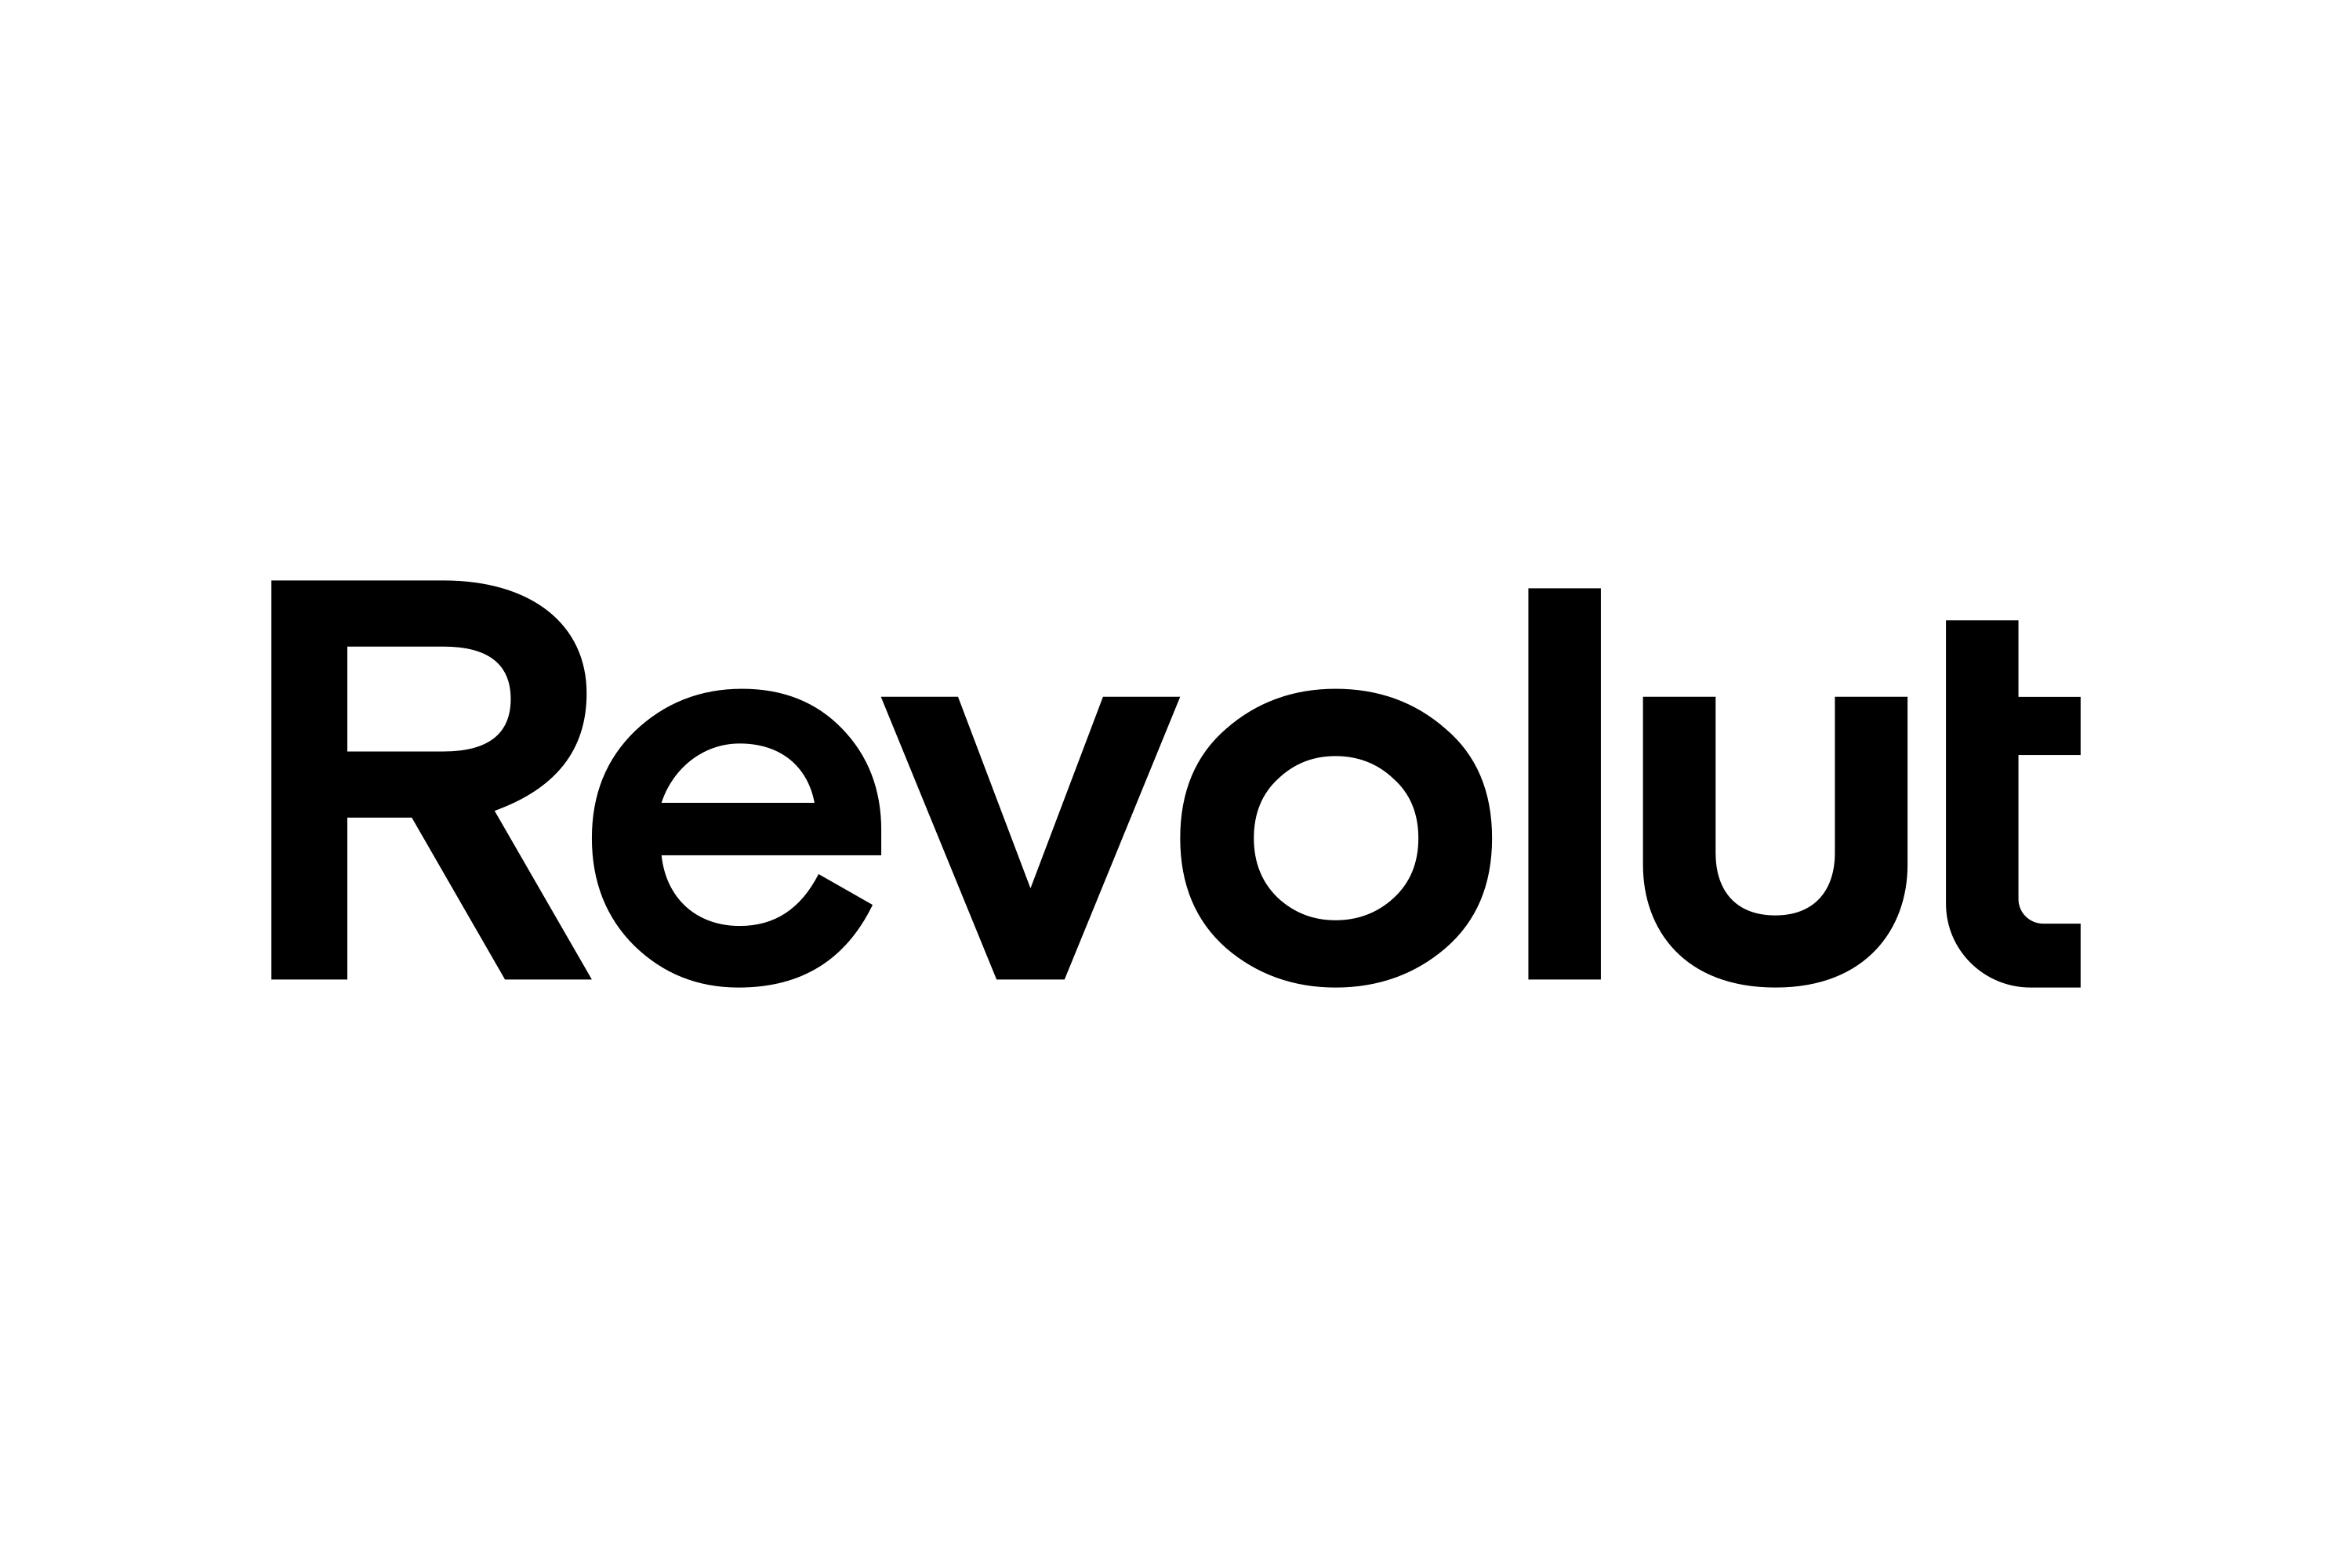 Revolut logo - Save on banking transaction cost while travelling abroad.